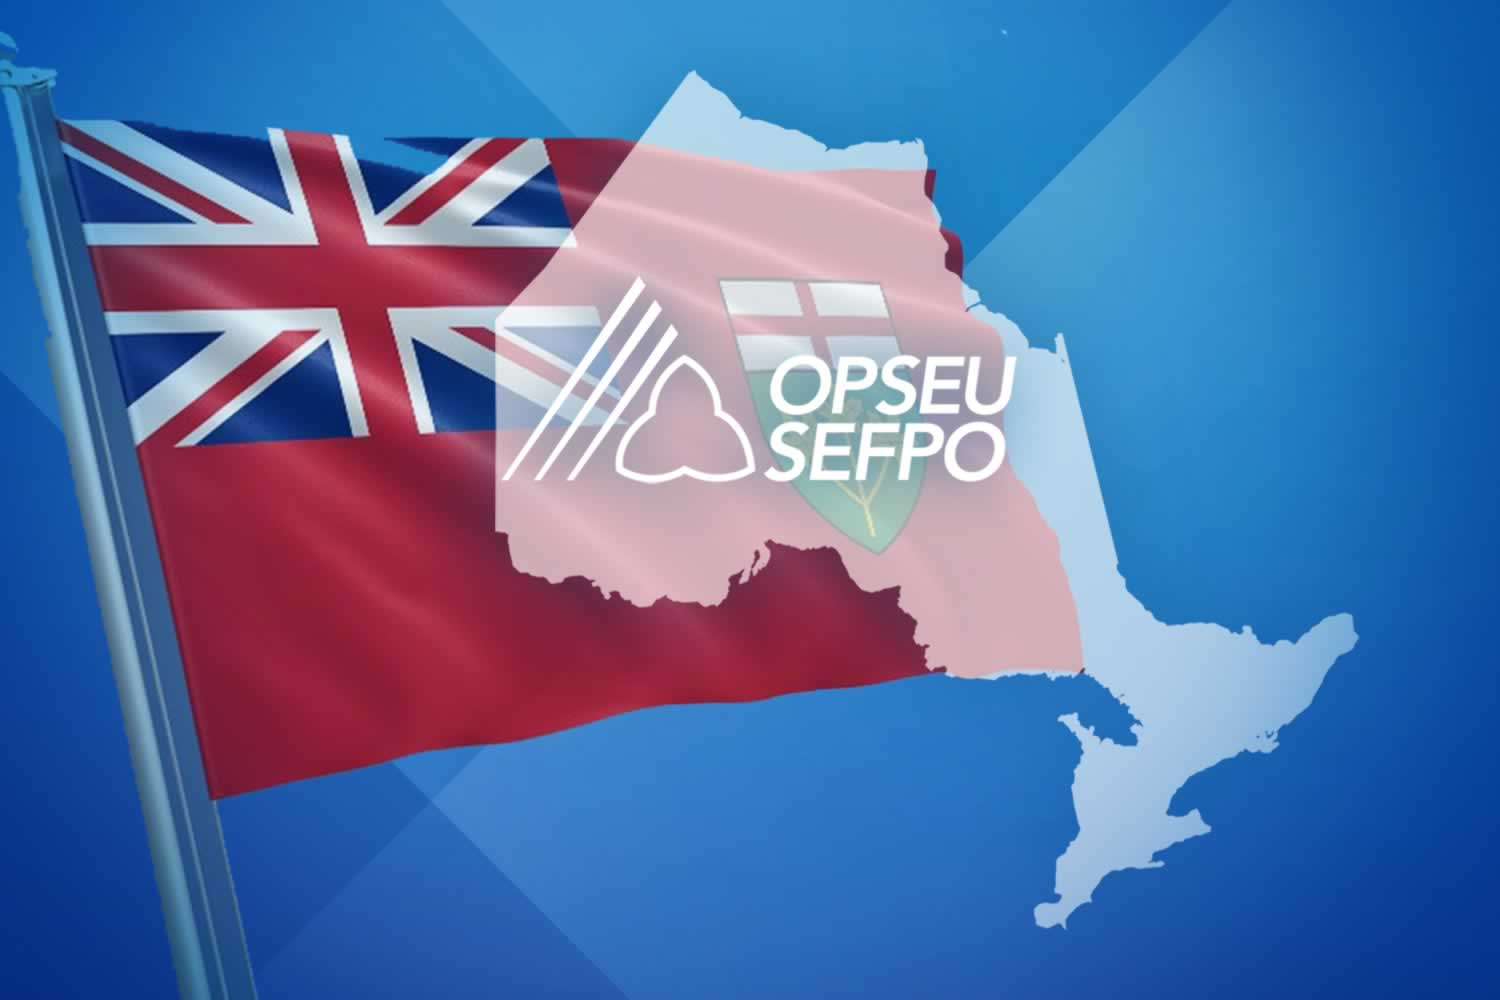 Ontario flag and Ontario map